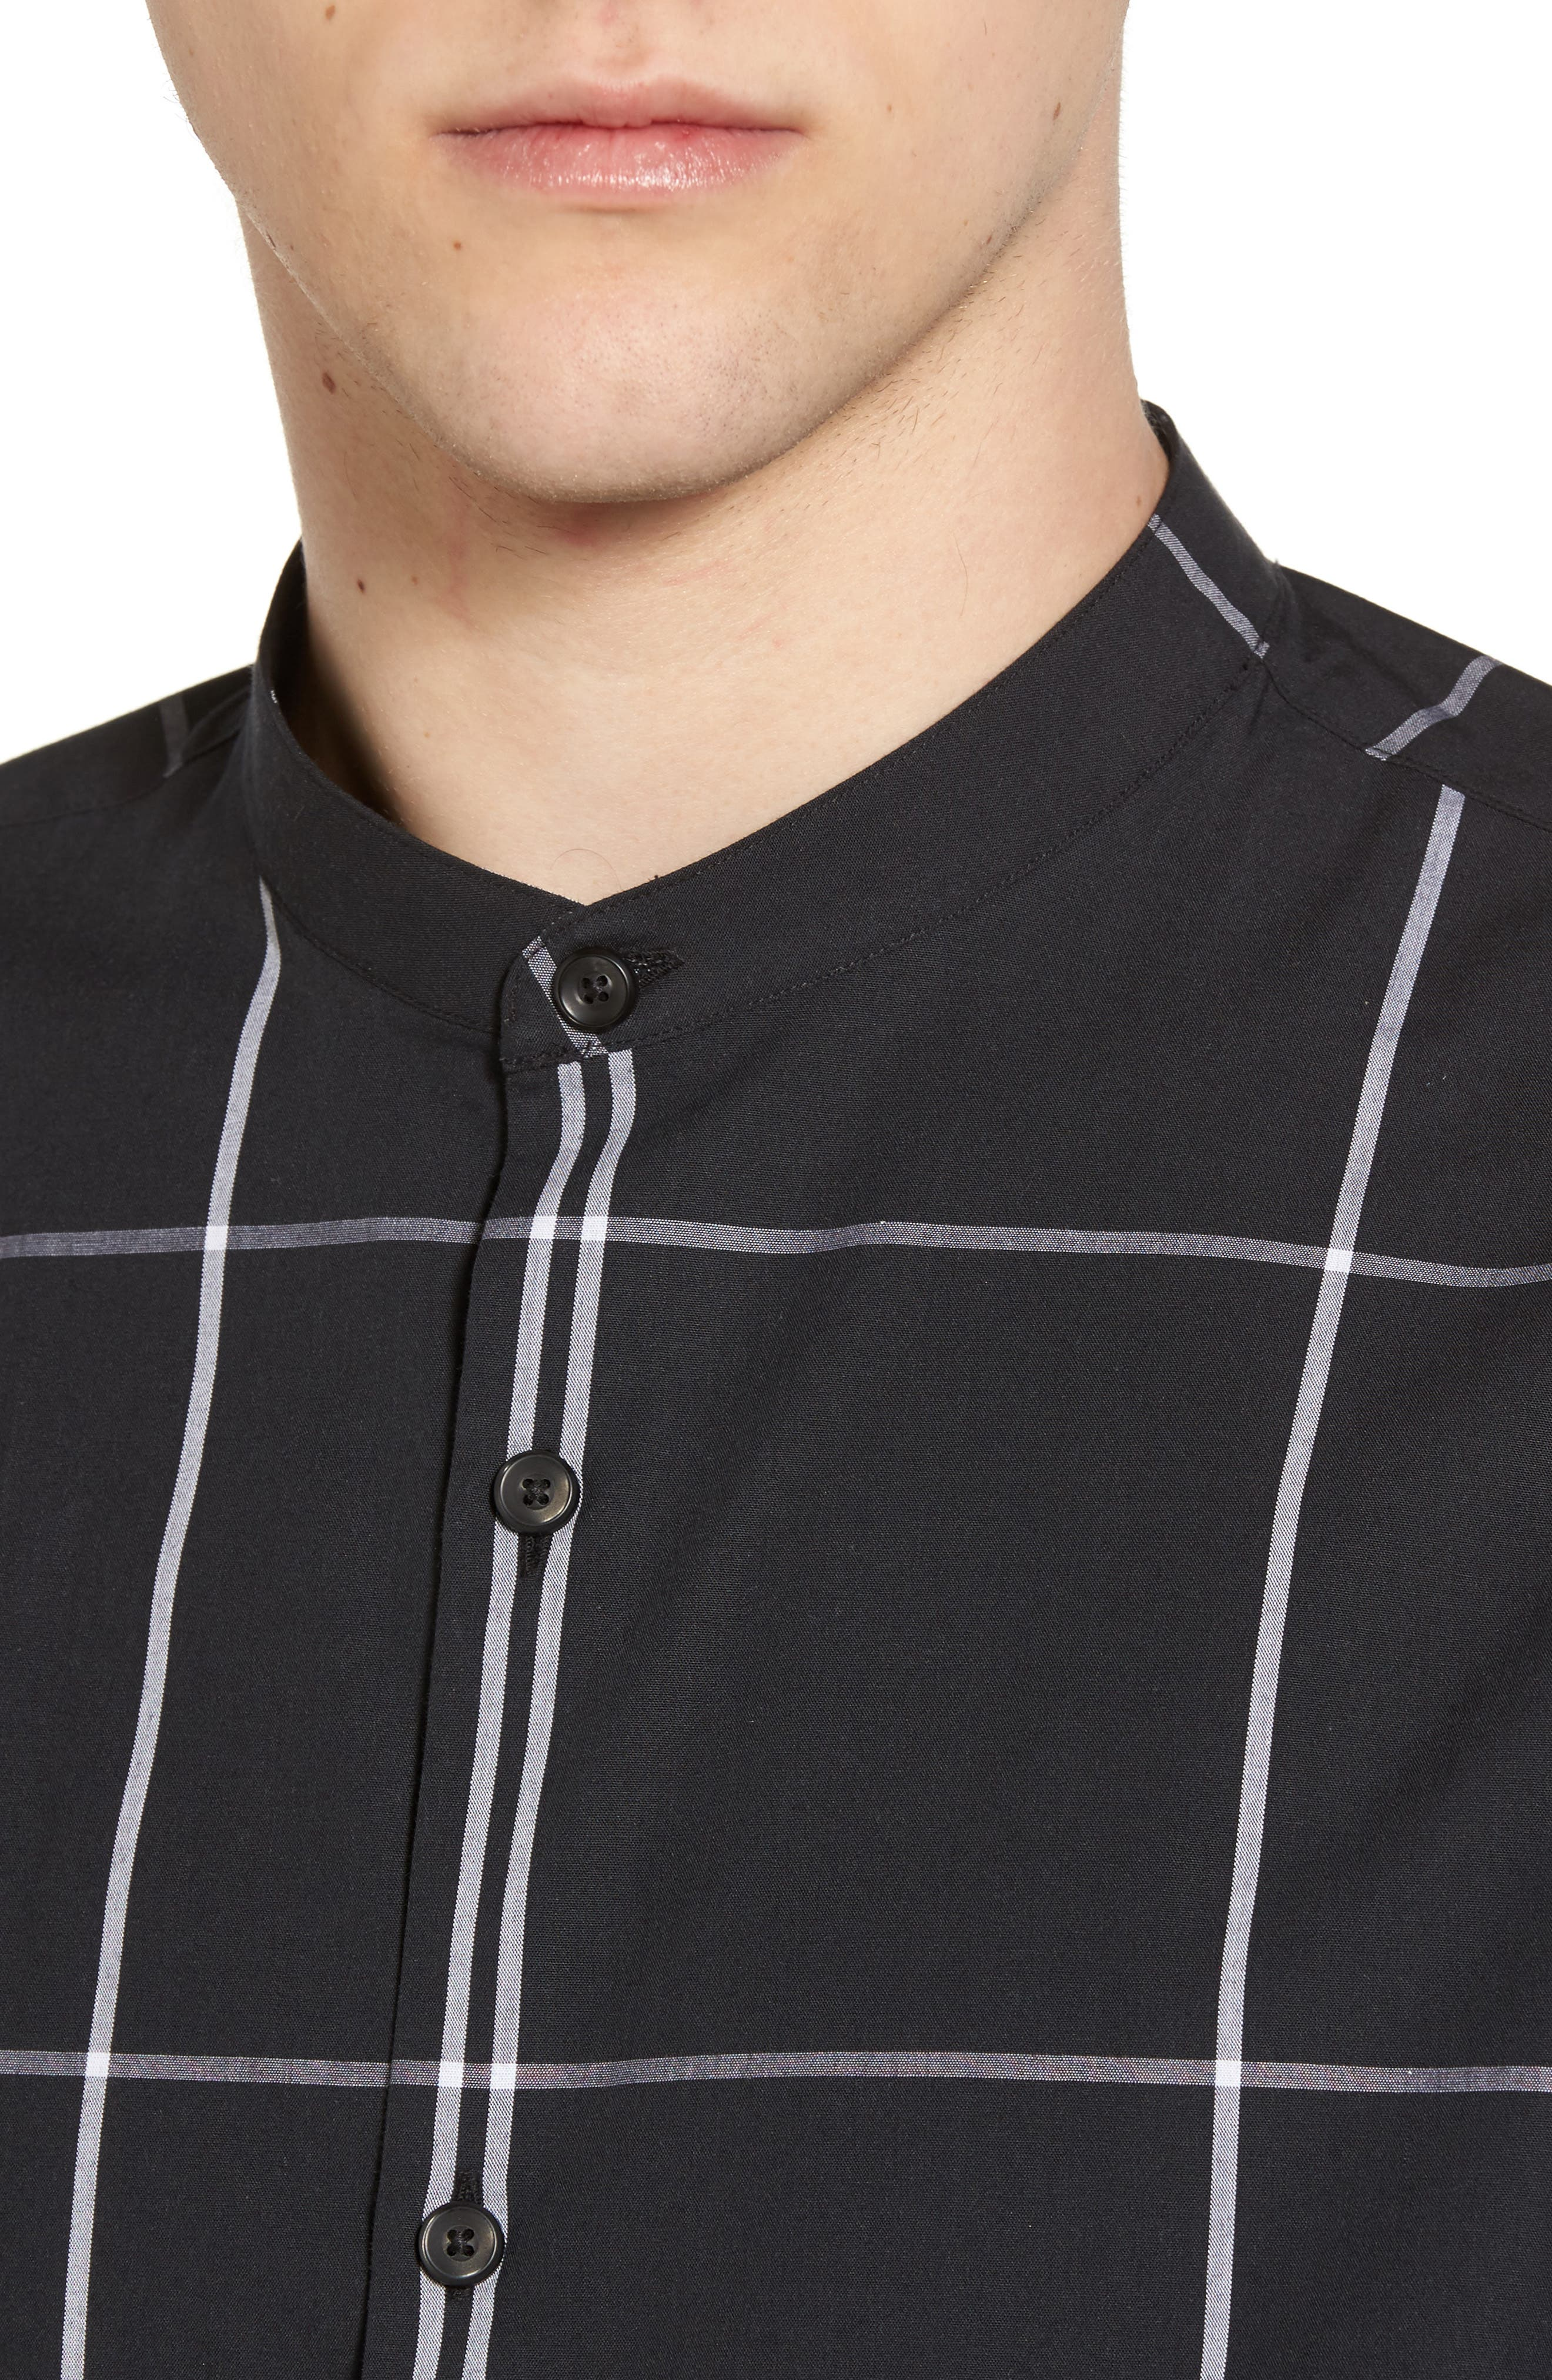 Trim Fit Windowpane Sport Shirt,                             Alternate thumbnail 4, color,